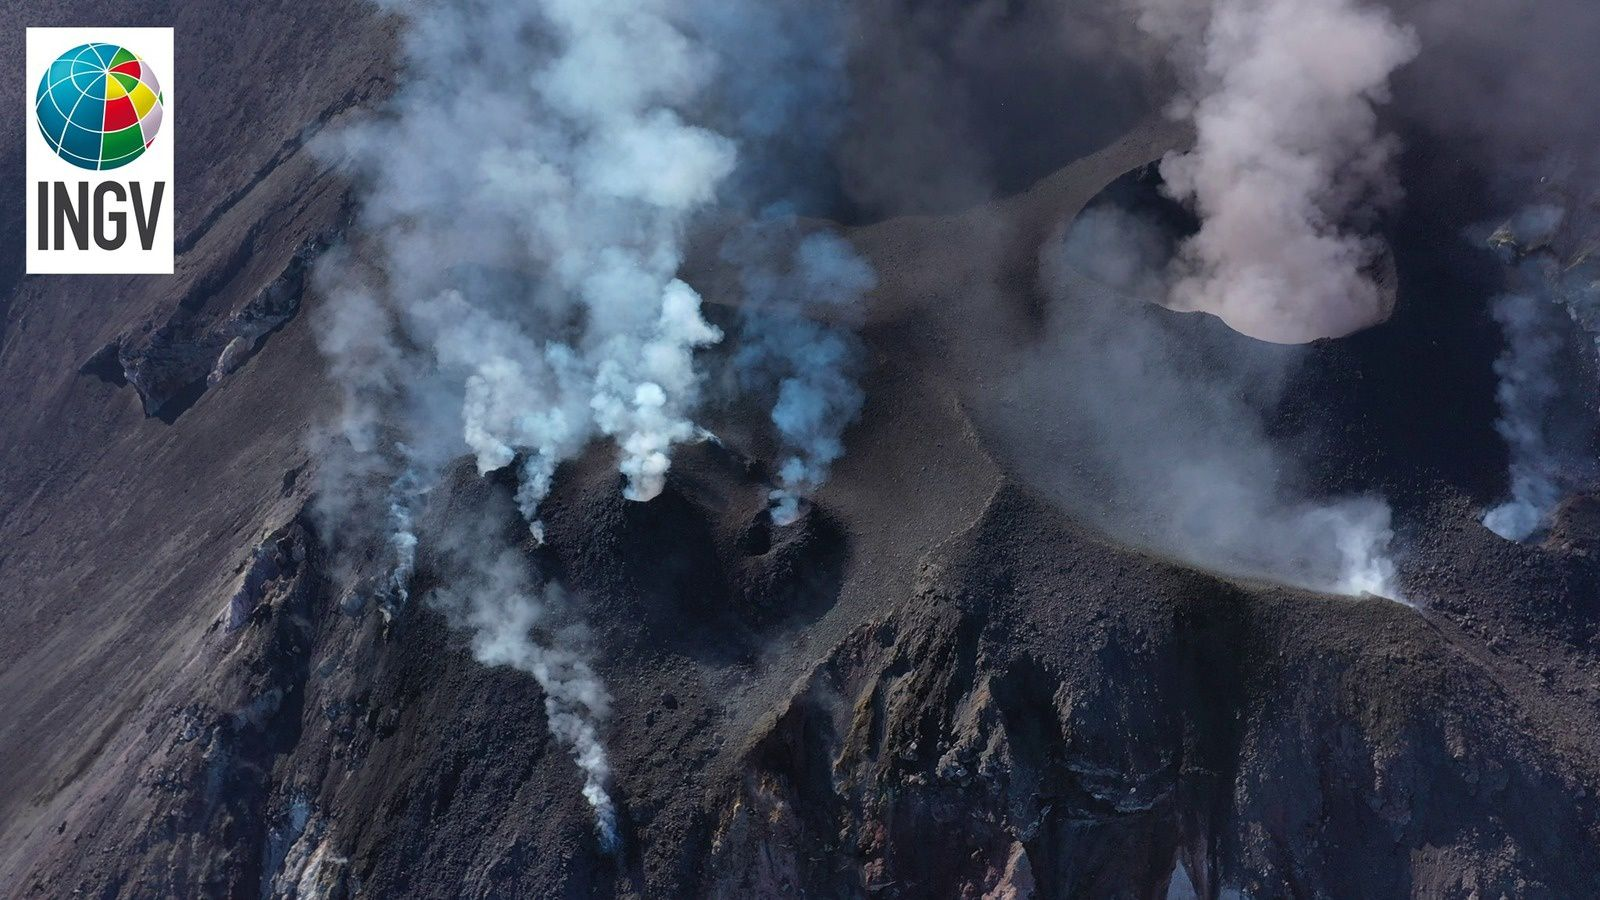 Stromboli - north sector (left) with 9 active vents - south-central sector (right) with a large cone of slag - photo INGV